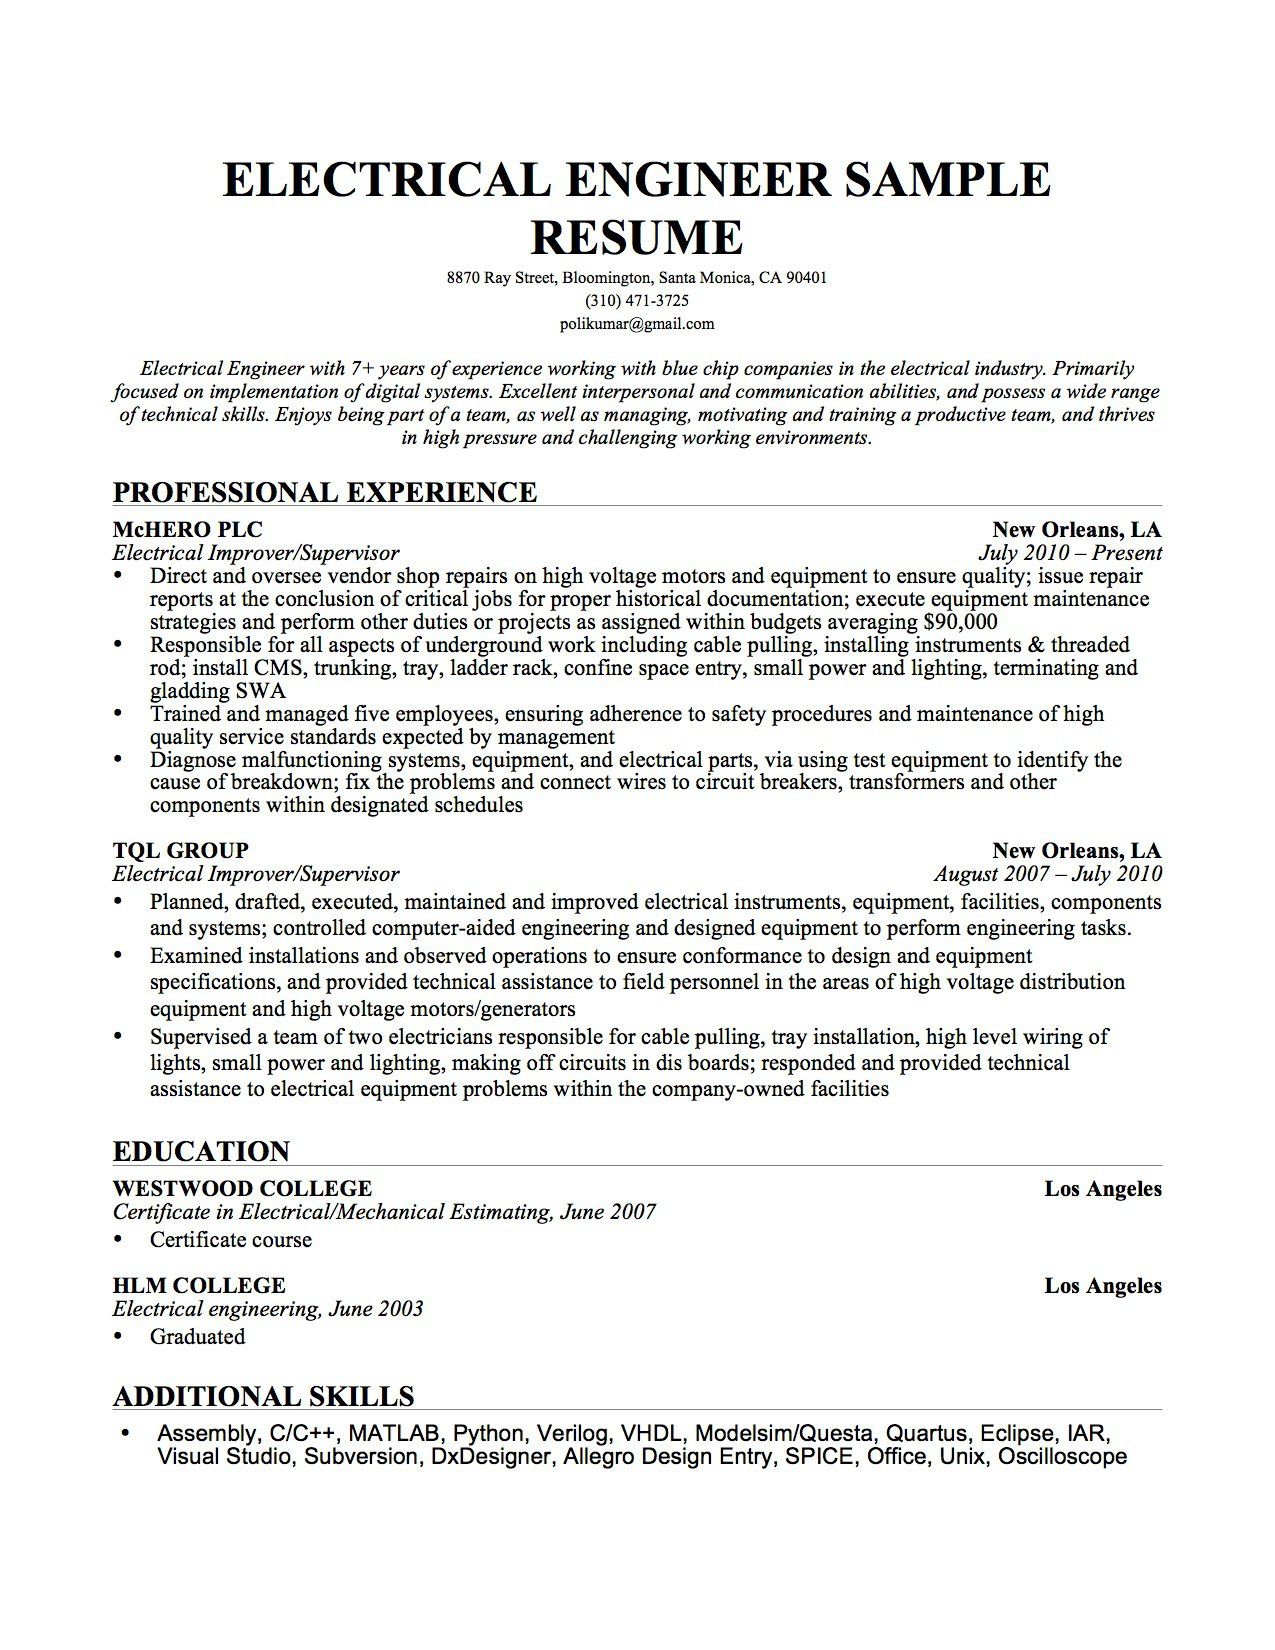 Engineer sample resume equipment fixed biomedical technician cover engineer sample resume equipment fixed biomedical technician cover letter vosvetenet spiritdancerdesigns Gallery